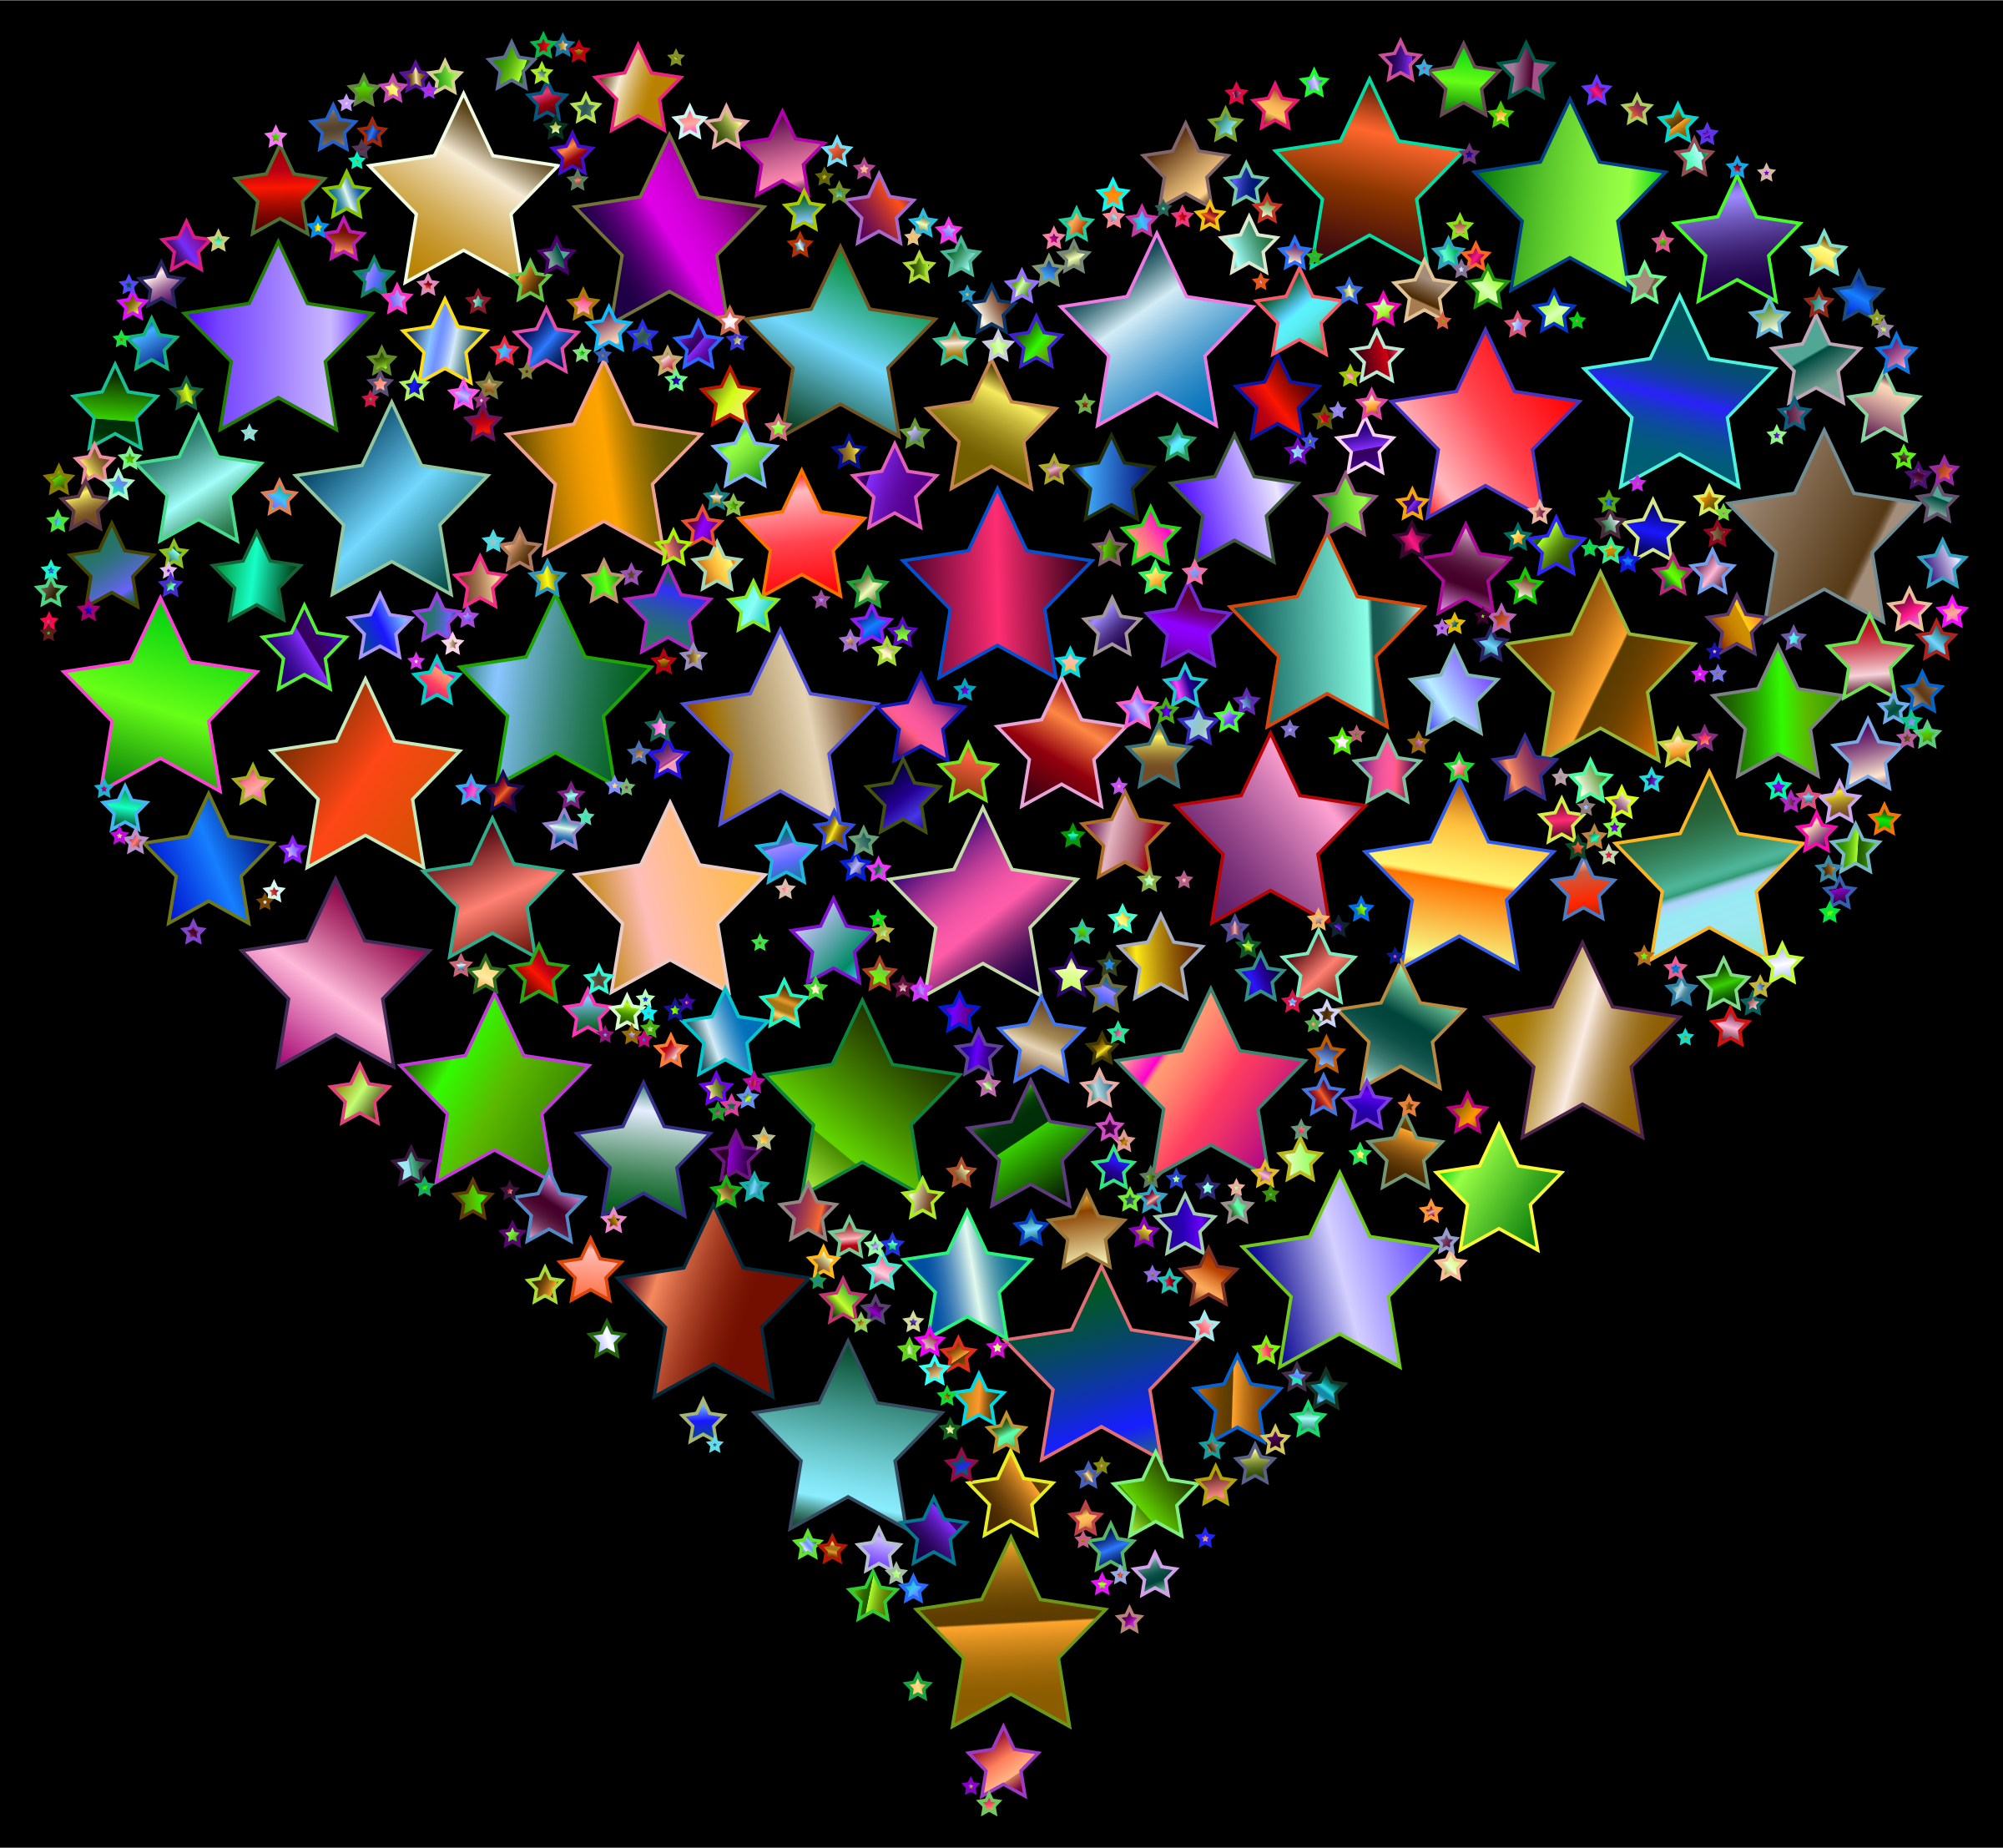 Colorful Heart Stars 9 Variation 2 by GDJ